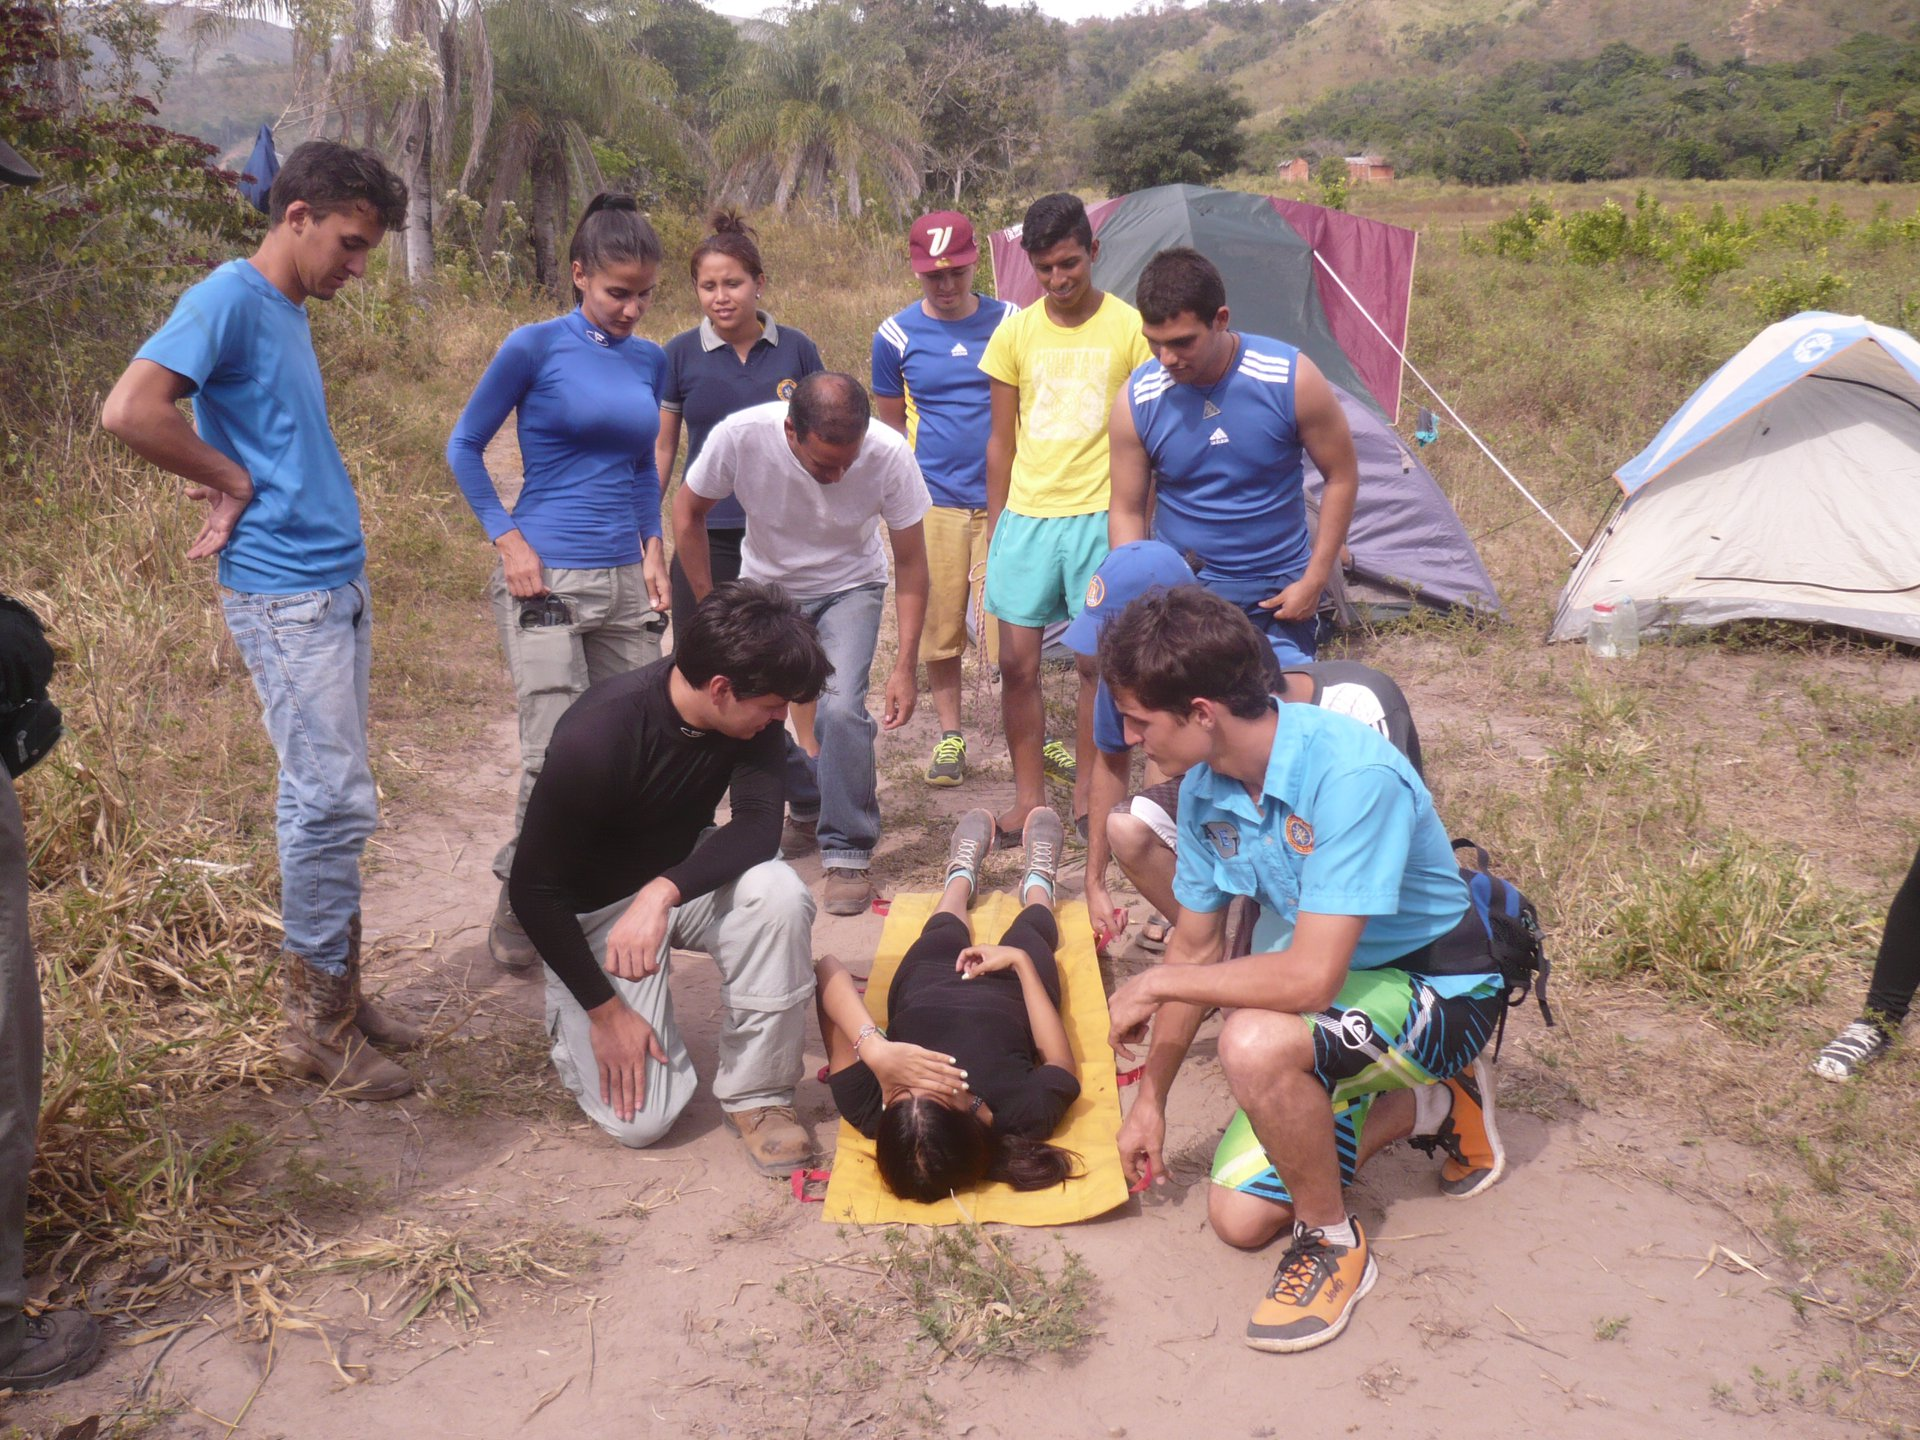 Transportation of Injured People in Outdoors Survival Campout | Monagas, Venezuela | Prof. Juan F. Peraza Marsiglia